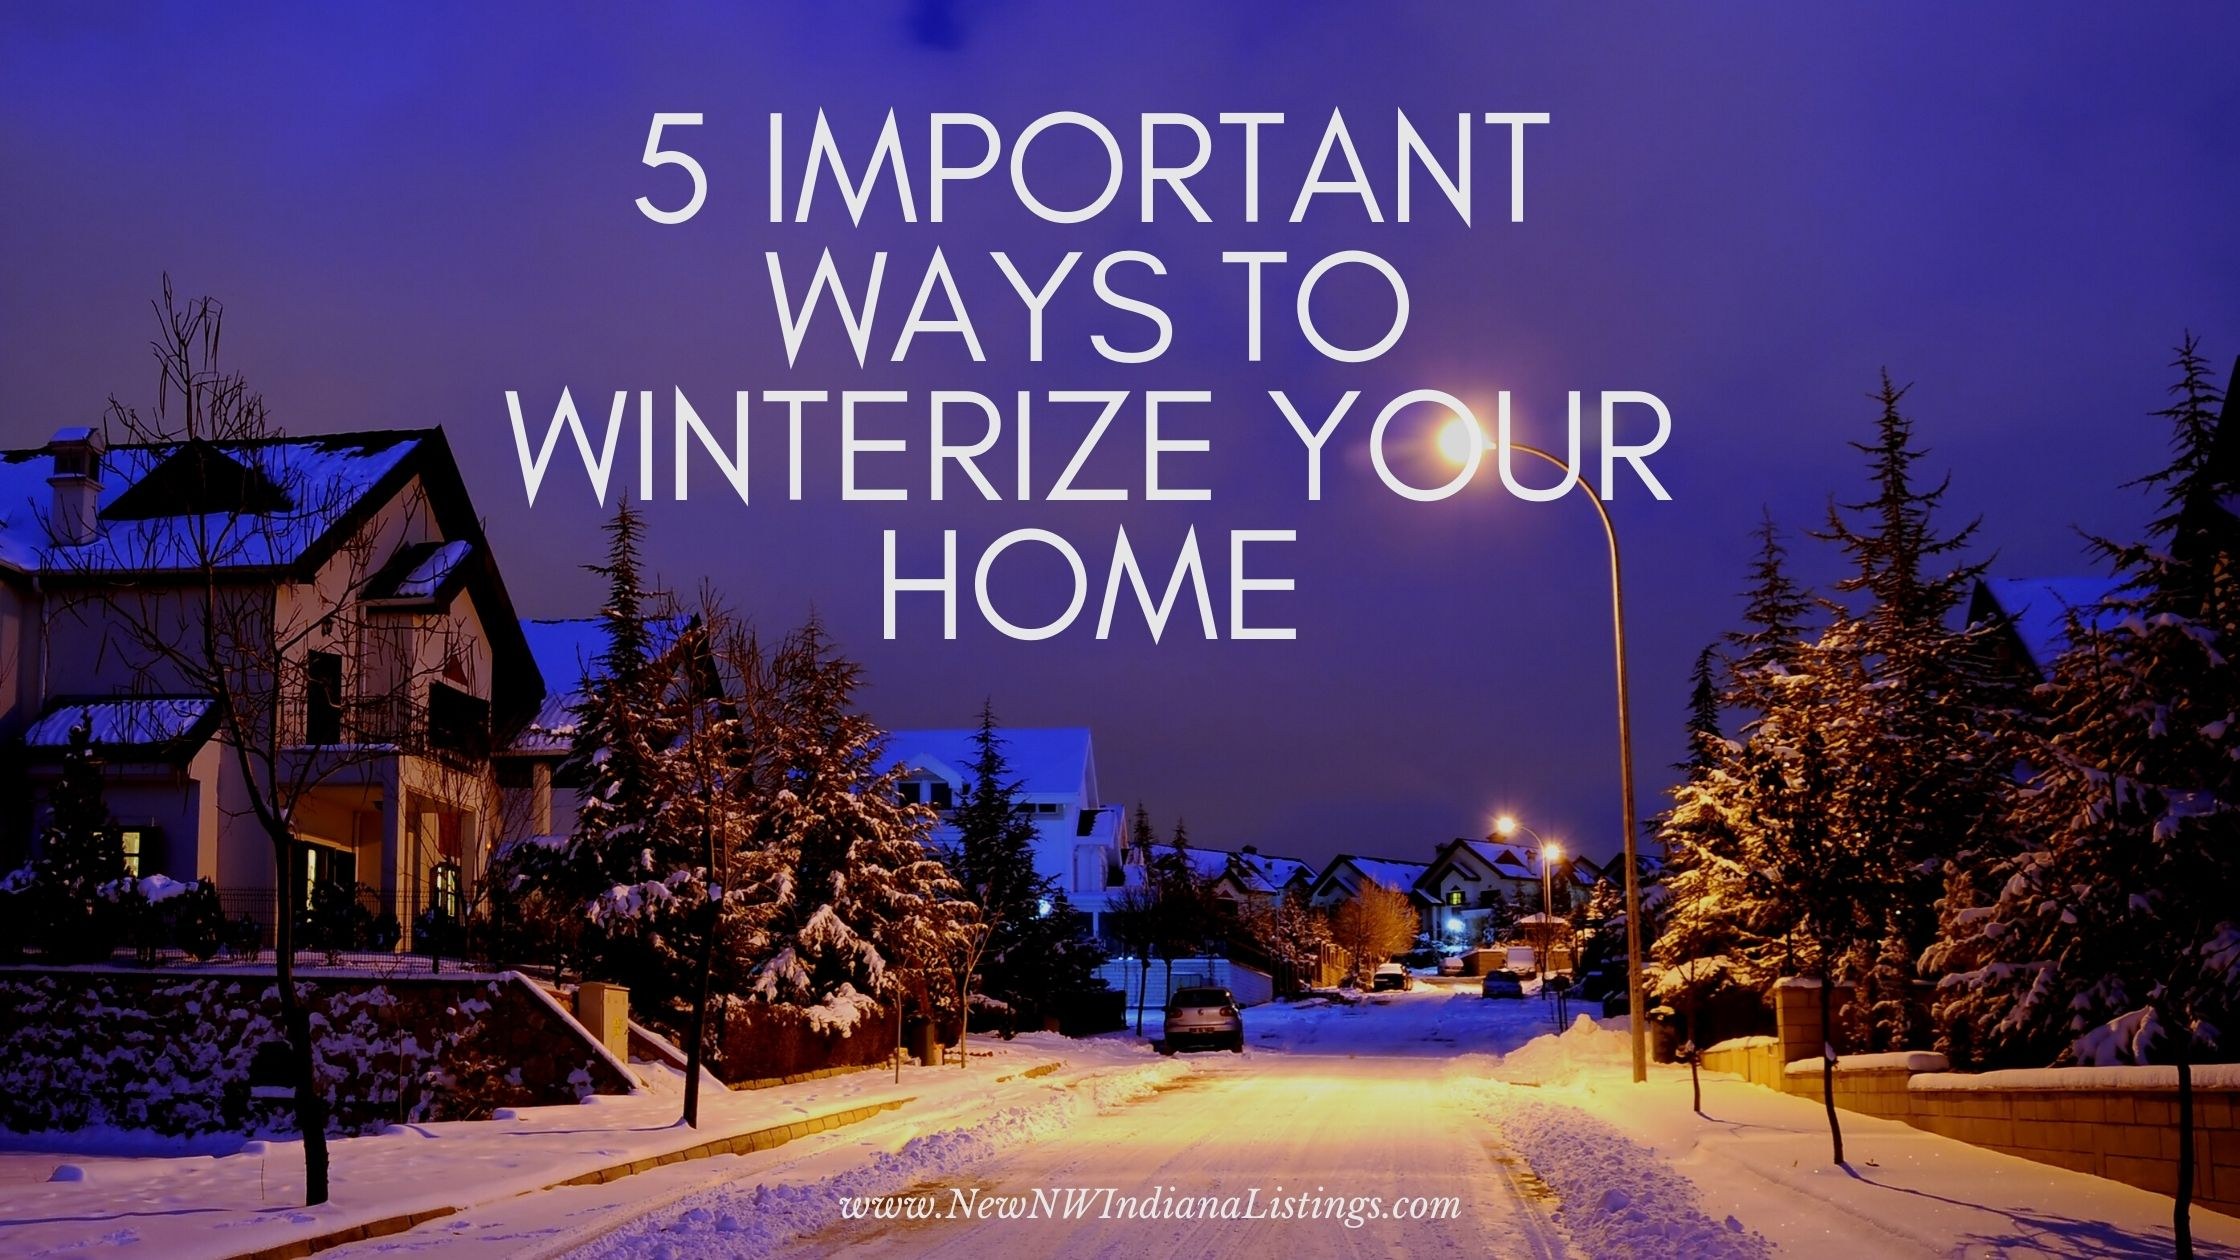 5 Important Ways to Winterize Your Home